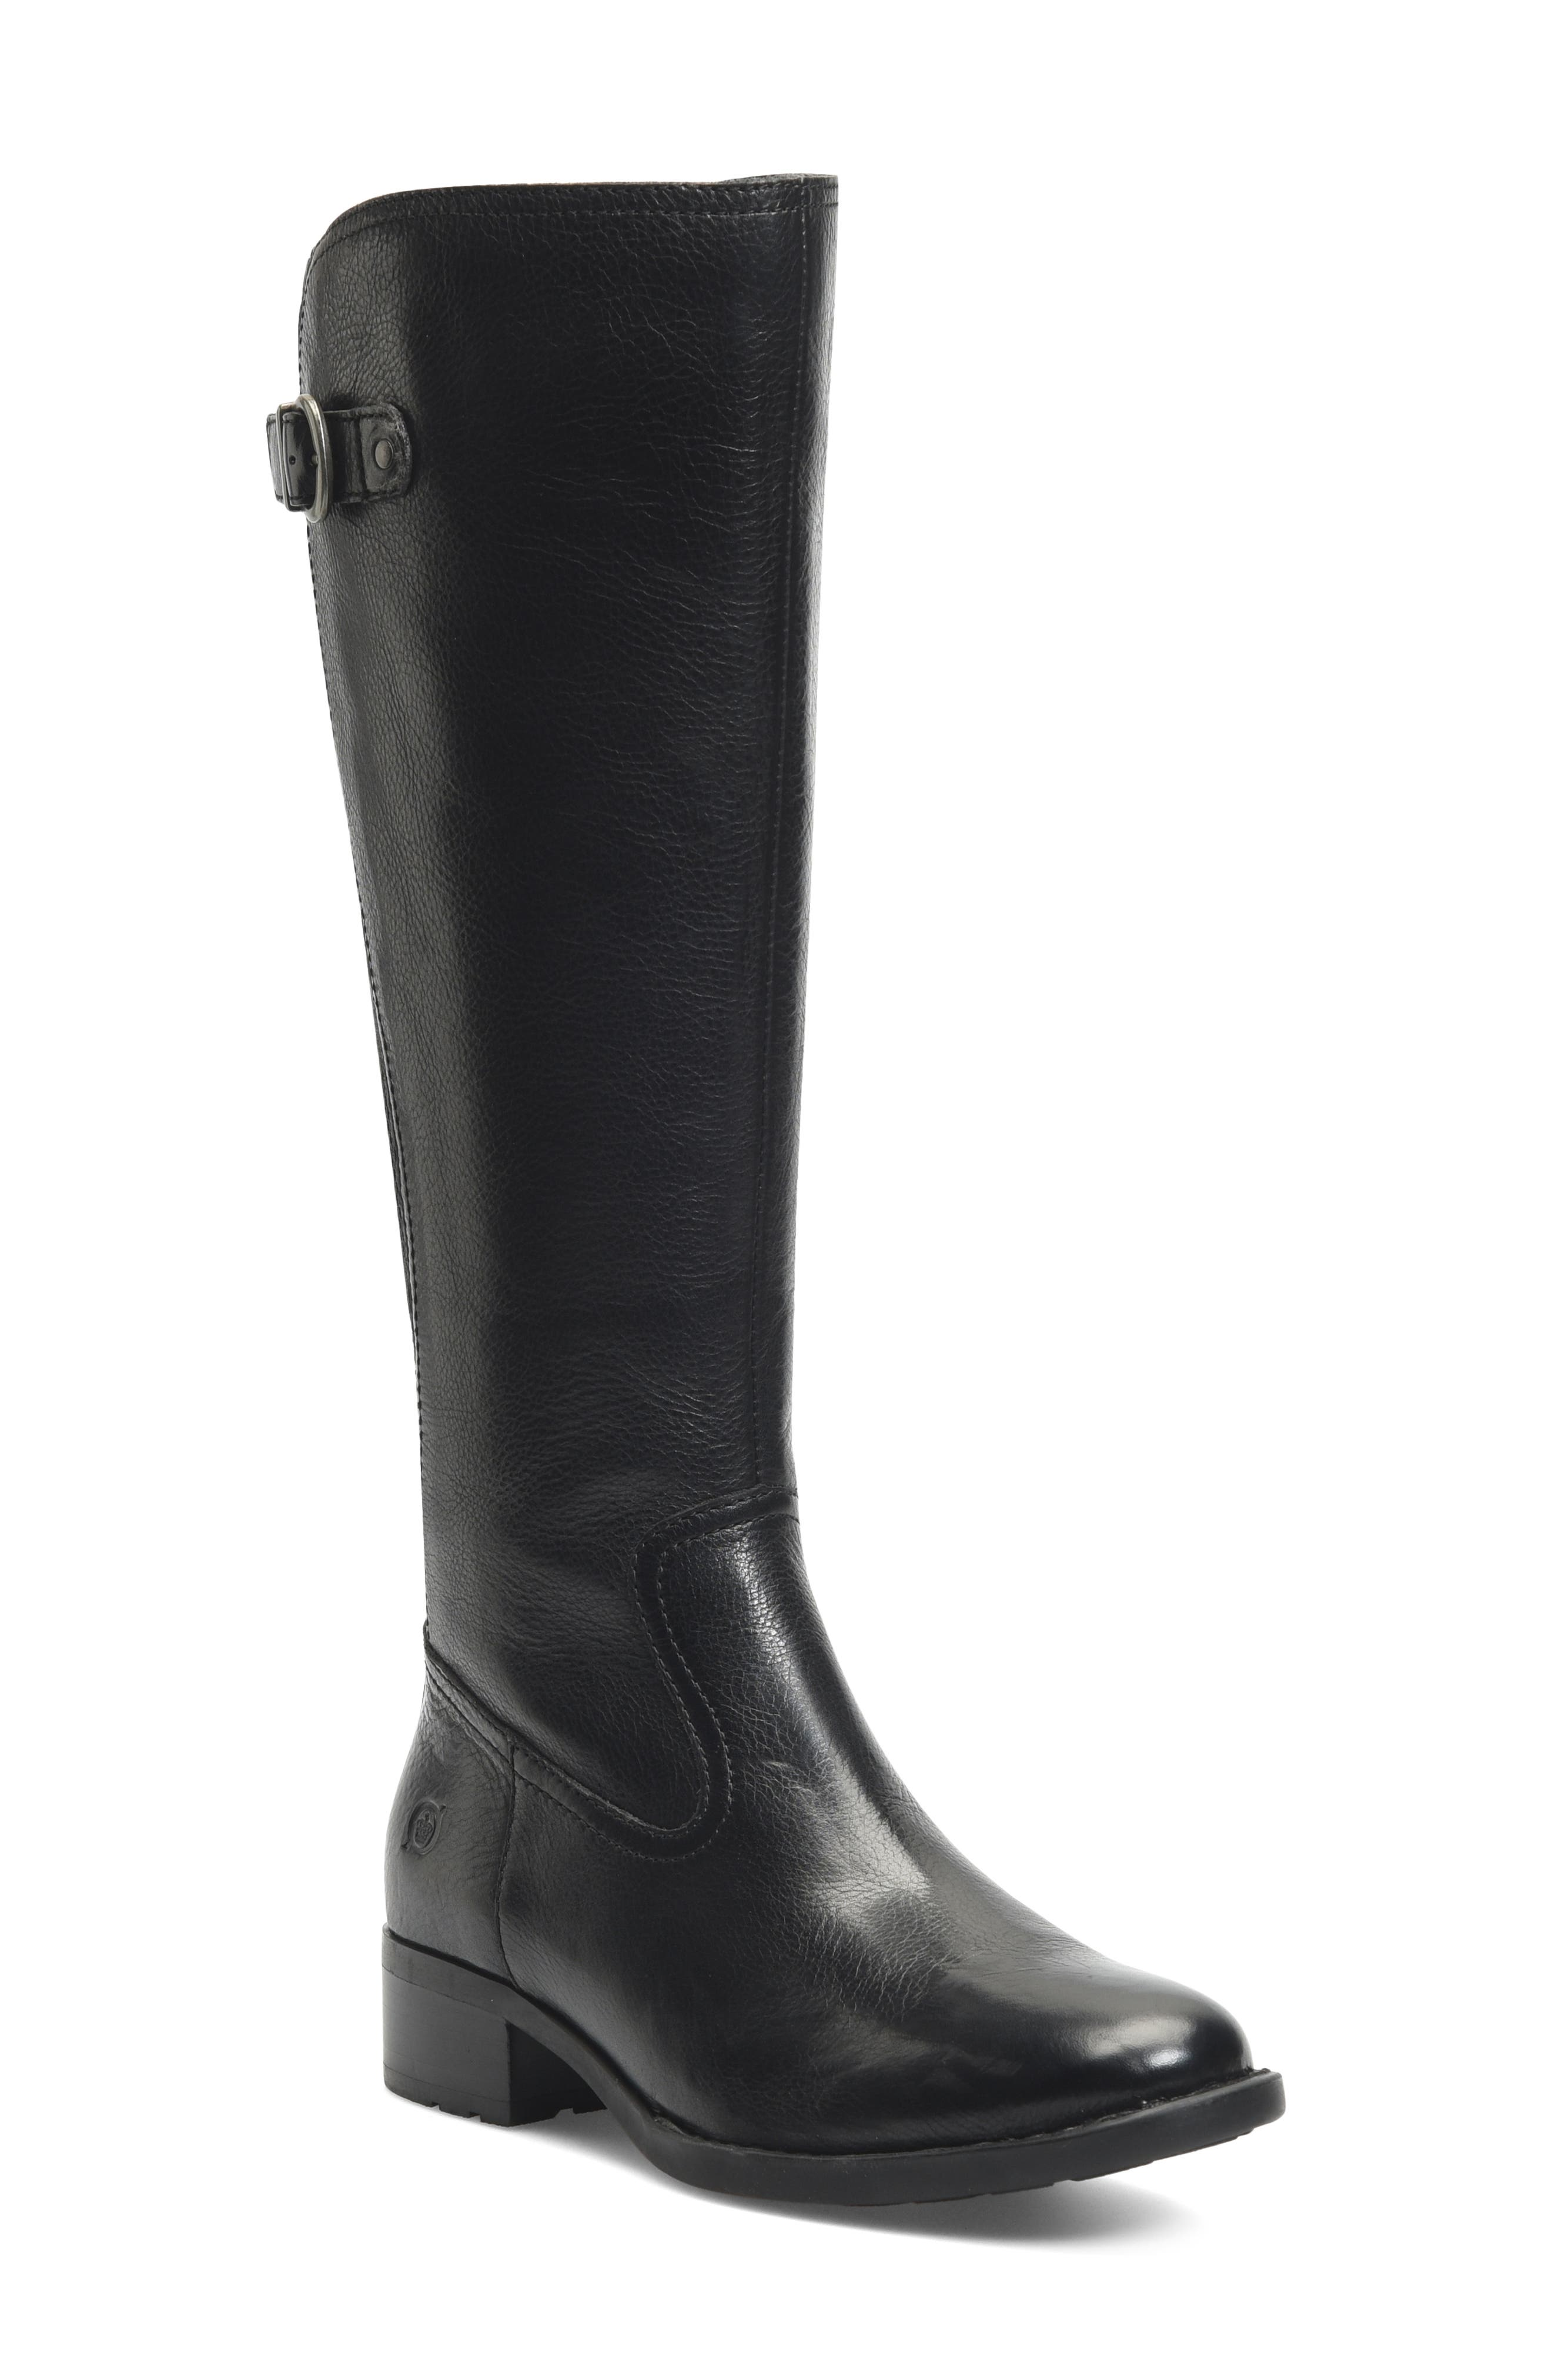 orthotic knee high boots